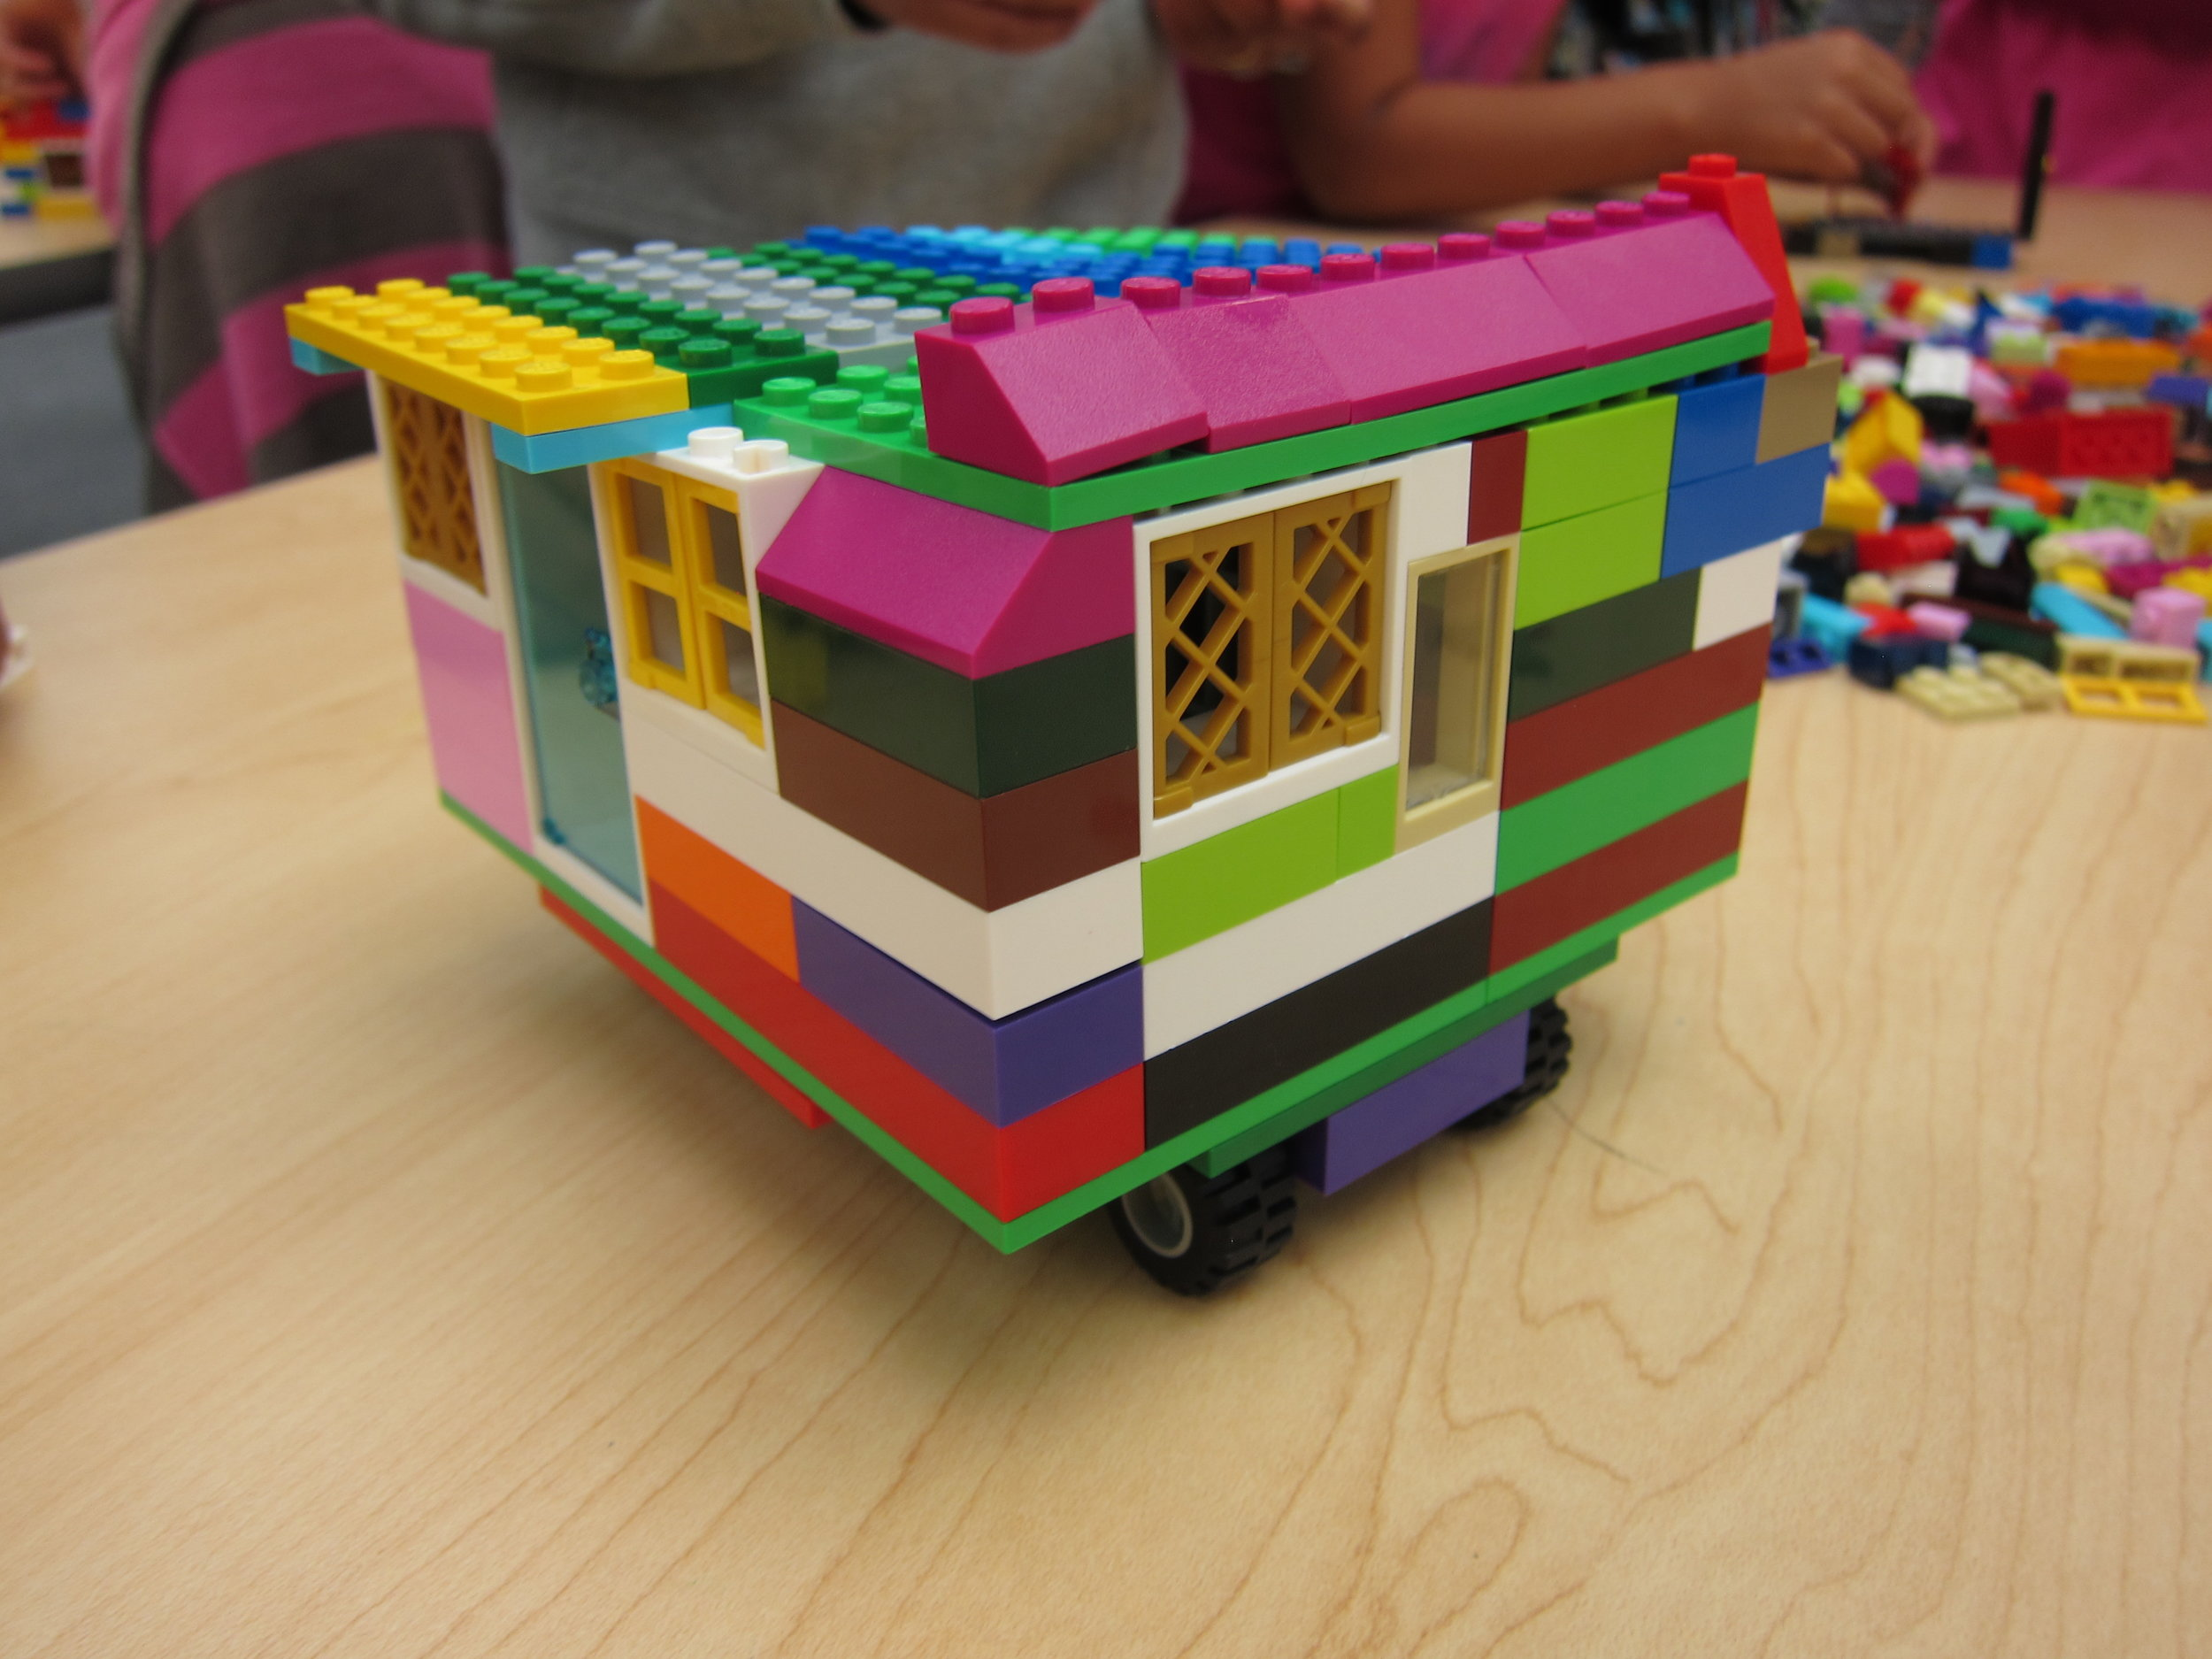 A Lego© house designed by one of the participants at Girl Empowerment Day 2017